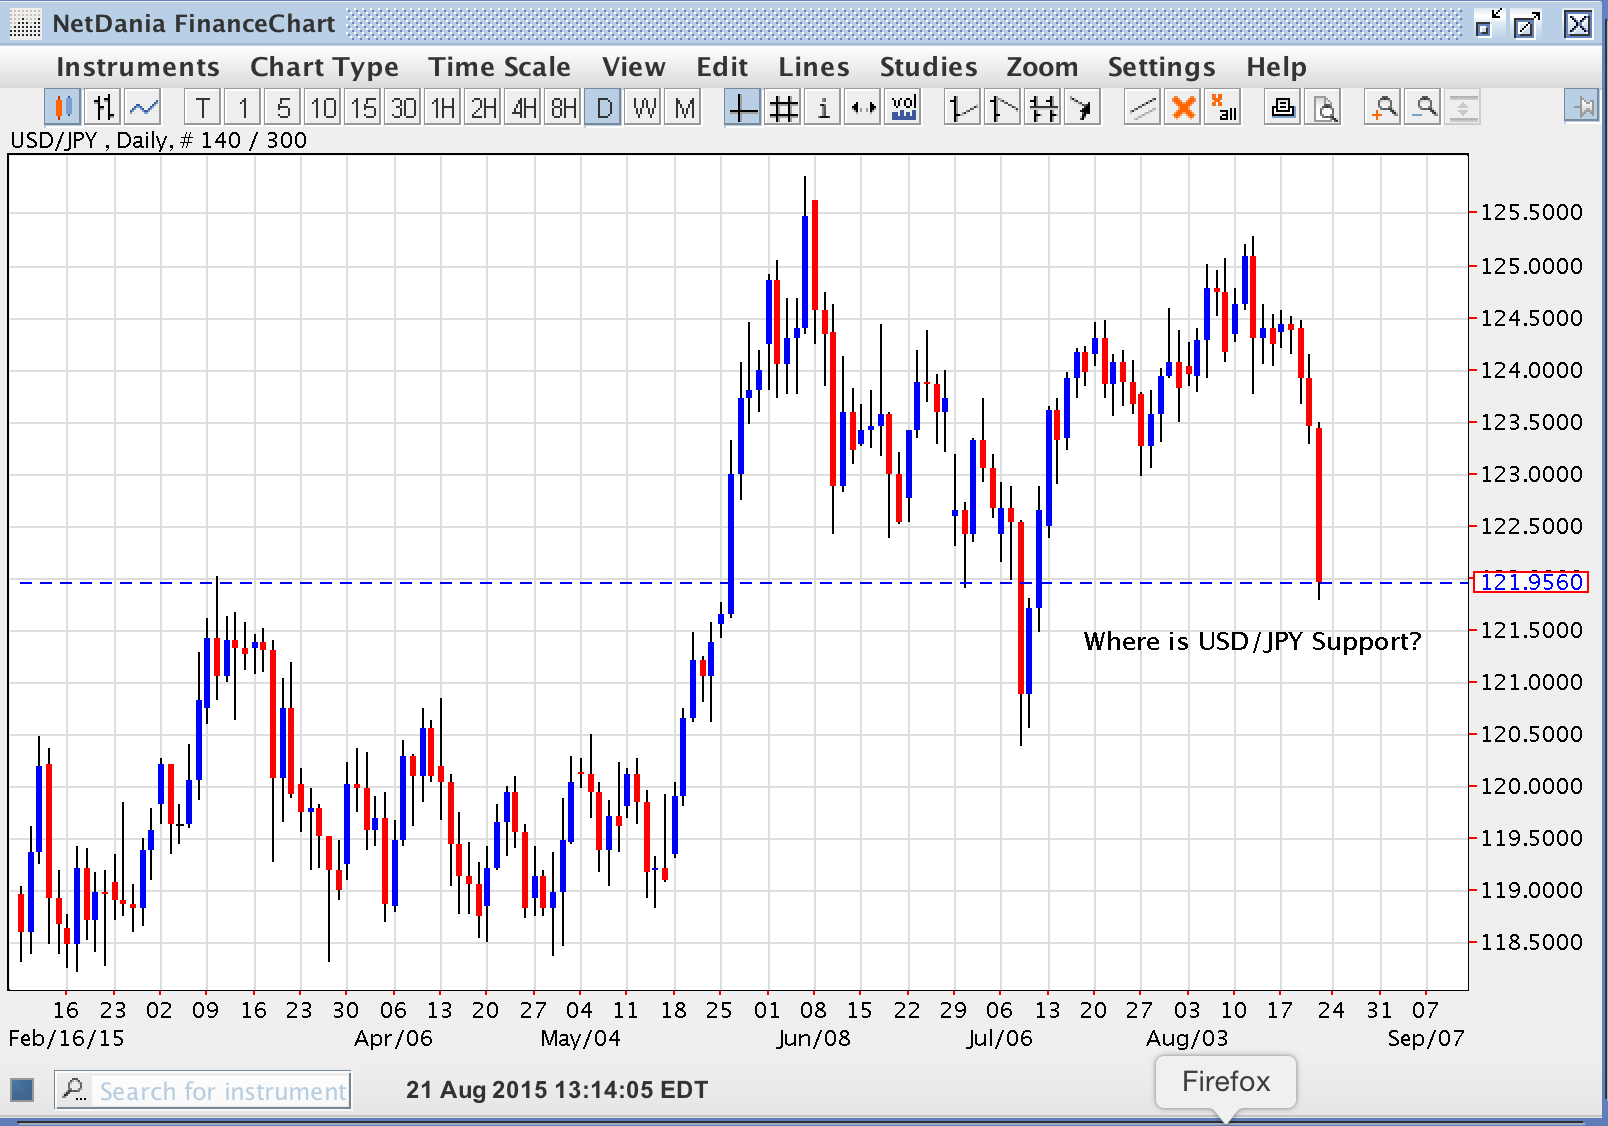 Where Will USD/JPY Find Support?